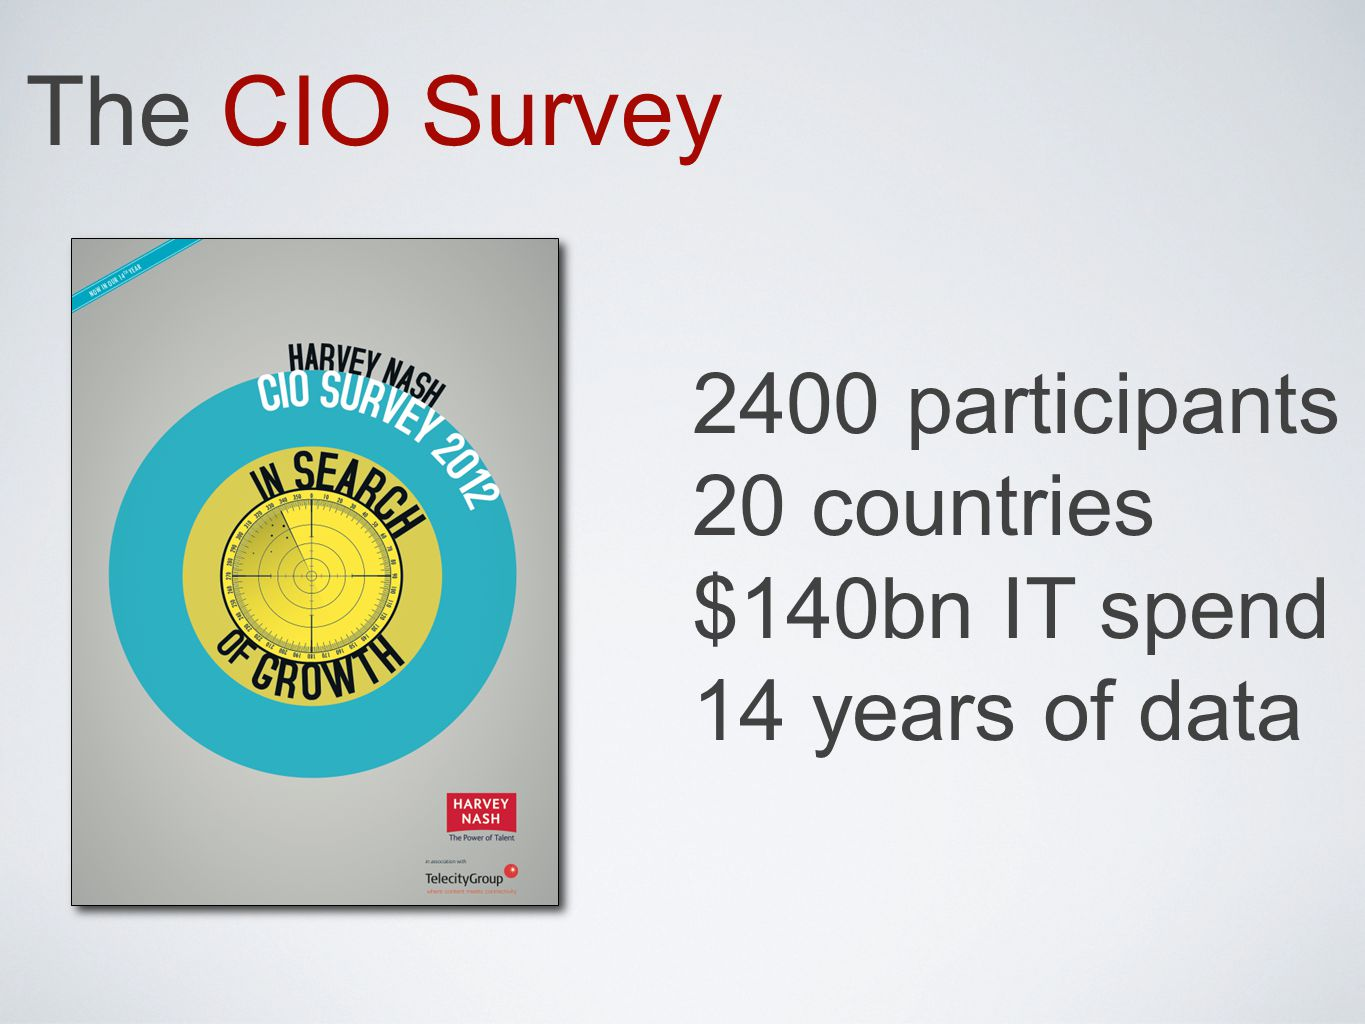 The CIO Survey 2400 participants 20 countries $140bn IT spend 14 years of data